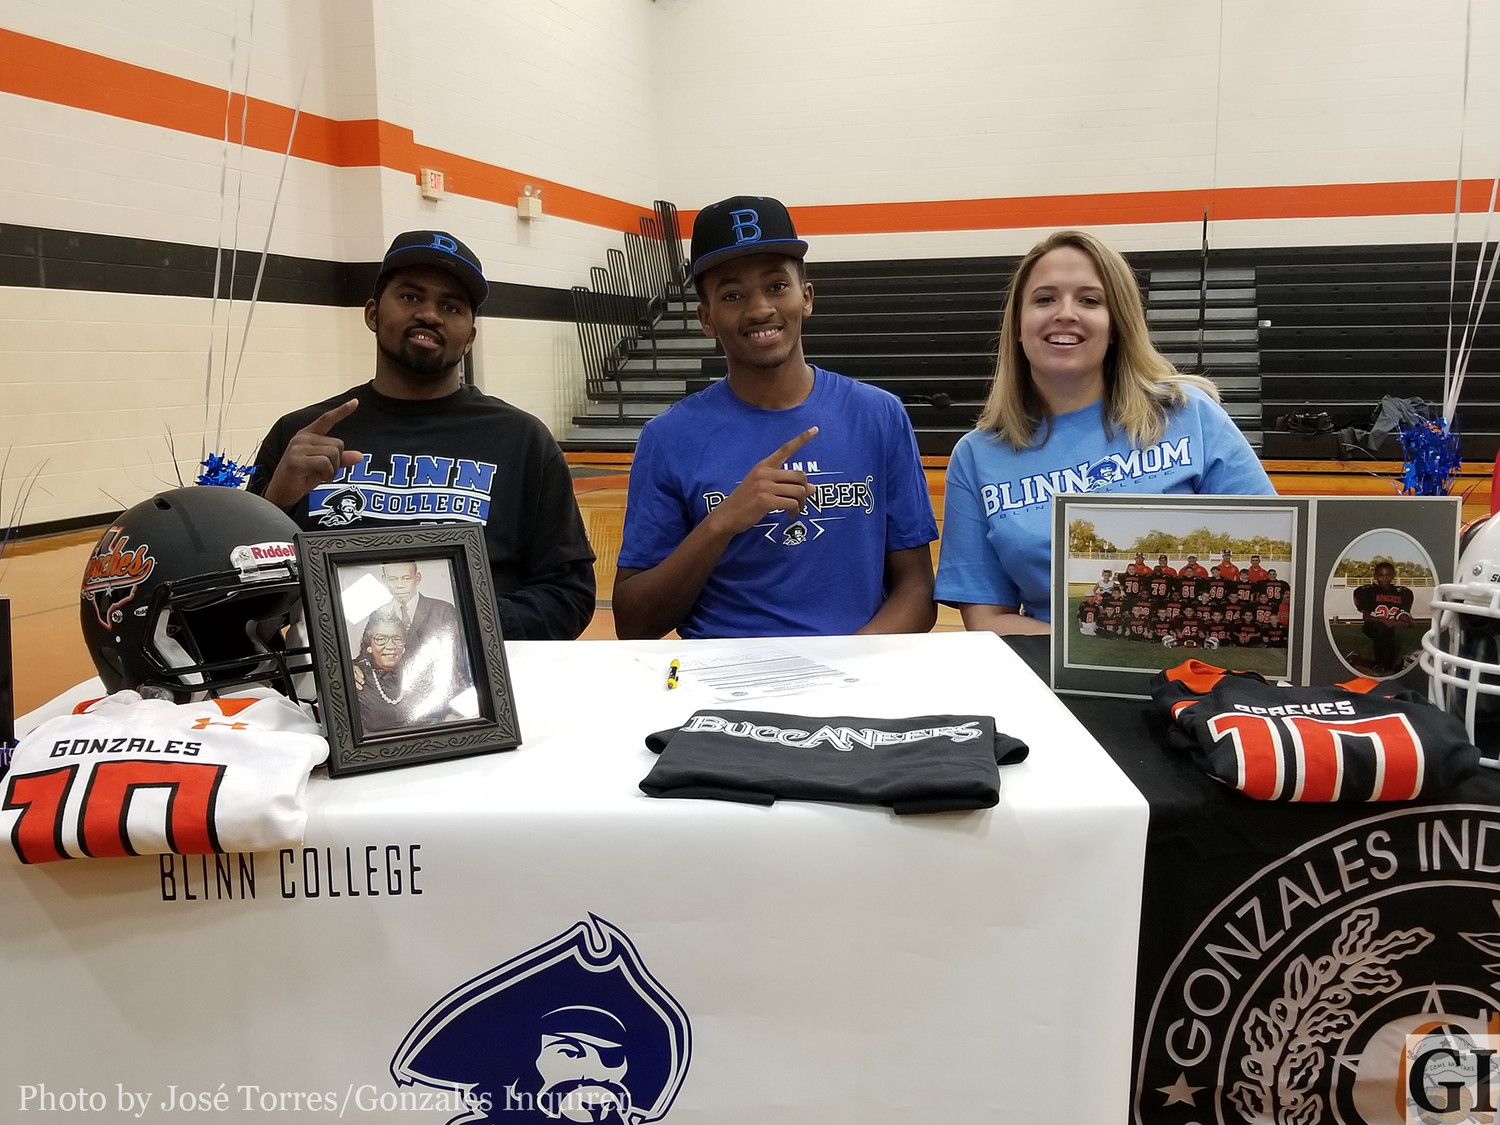 The multi-sport athlete Trevion McNeil officially signed on to attend Blinn College and play football for the Buccaneers.